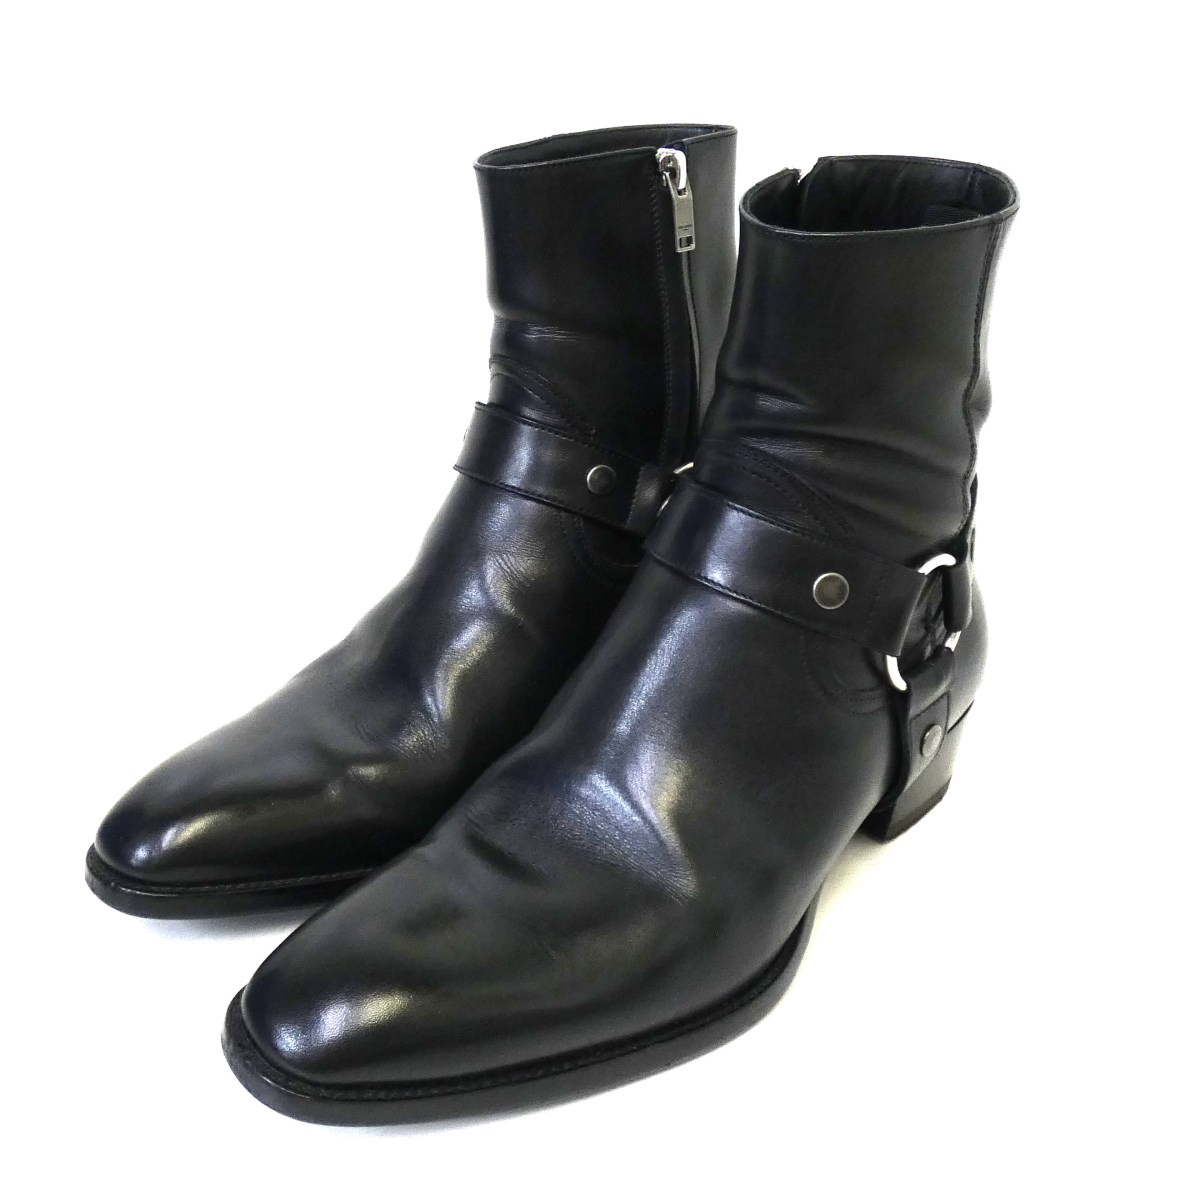 ブーツ, その他 SAINT LAURENT PARIS WYATT 40 HARNESS BOOTS40 41 160120